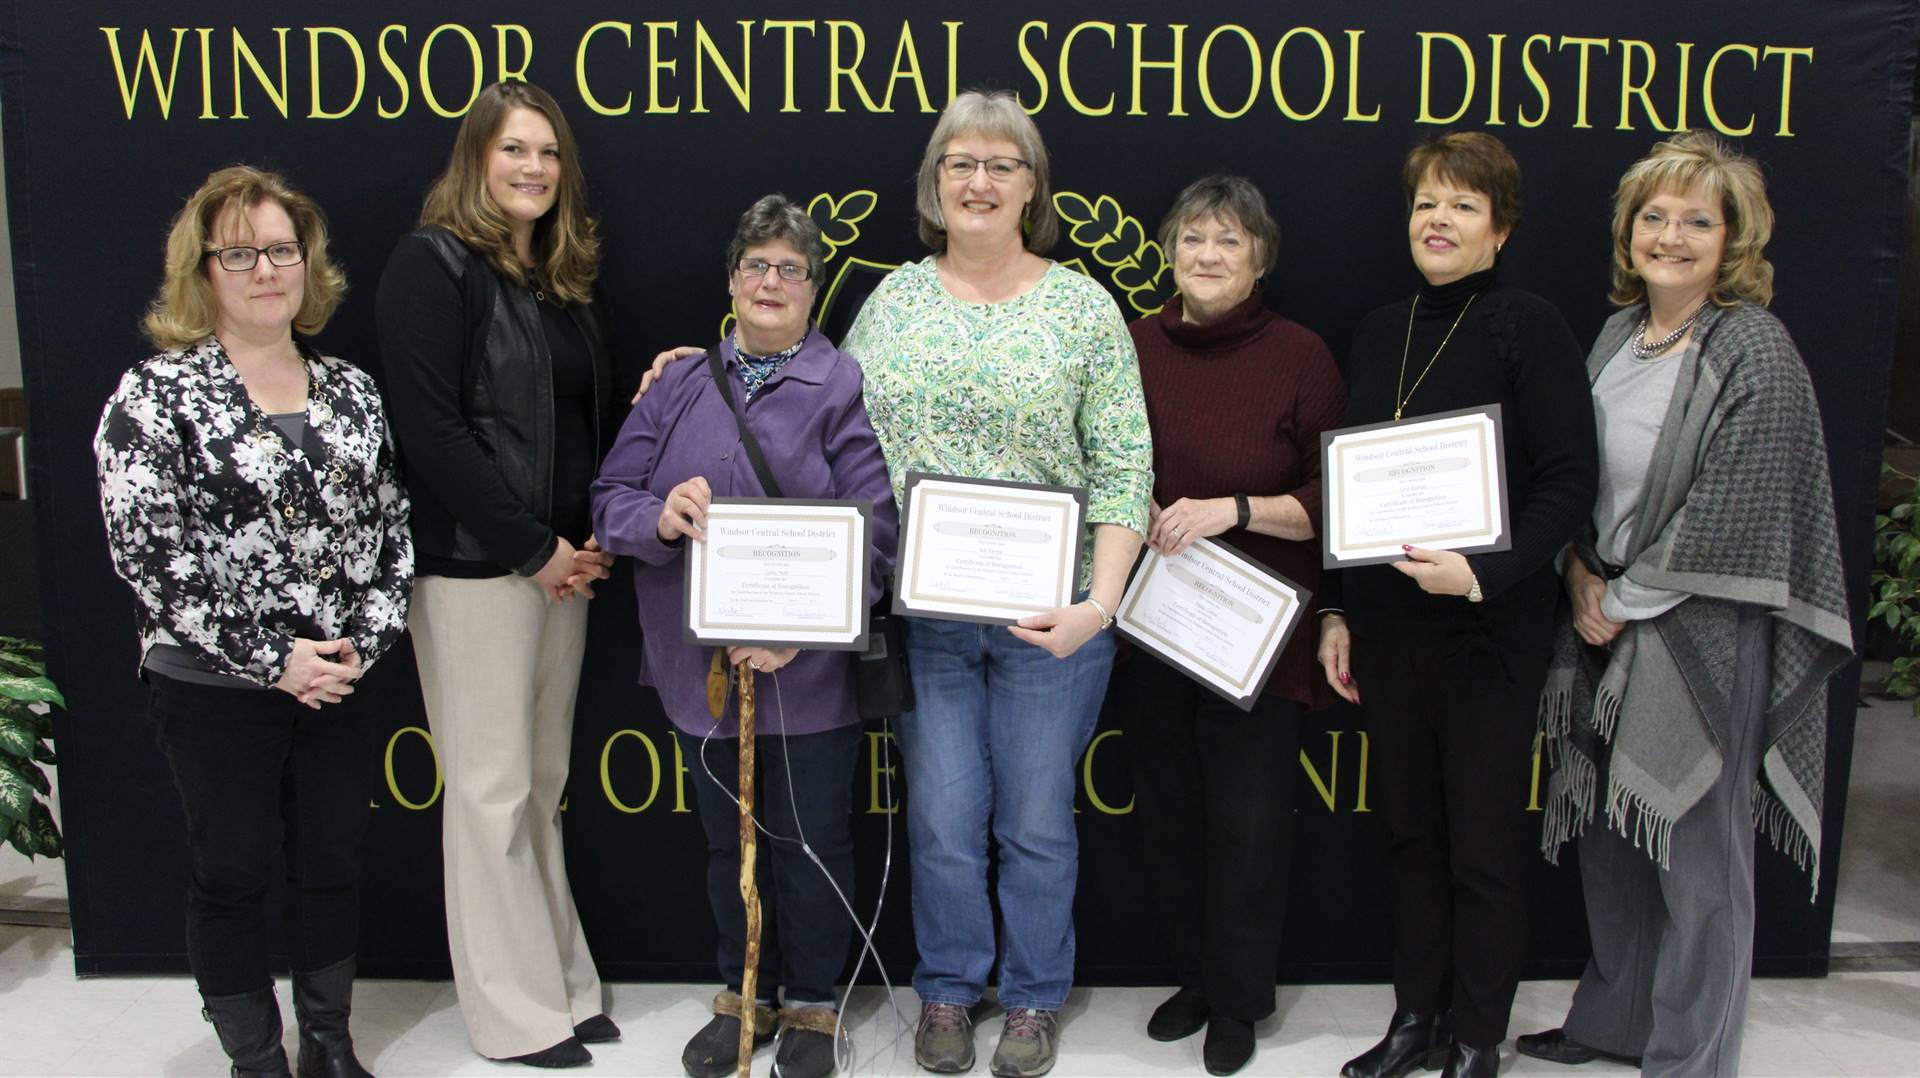 Windsor Garden Group – Corky Mott, Sue Rambo, Sue Balchikonis, Lynn Klumpp and Peggy Colosi